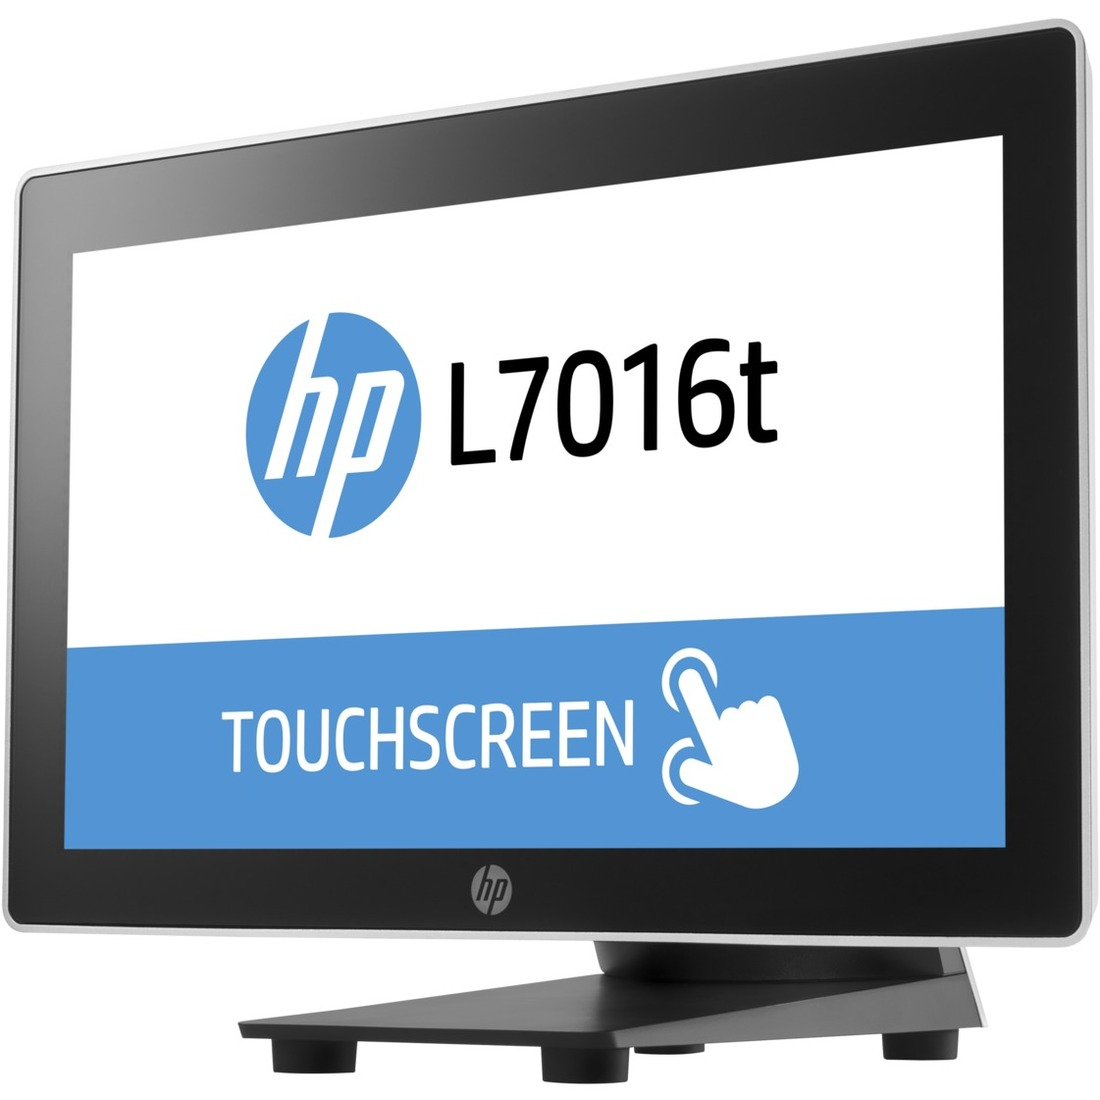 """HP L7016t 15.6"""" LCD Touchscreen Monitor - 16:9_subImage_1"""